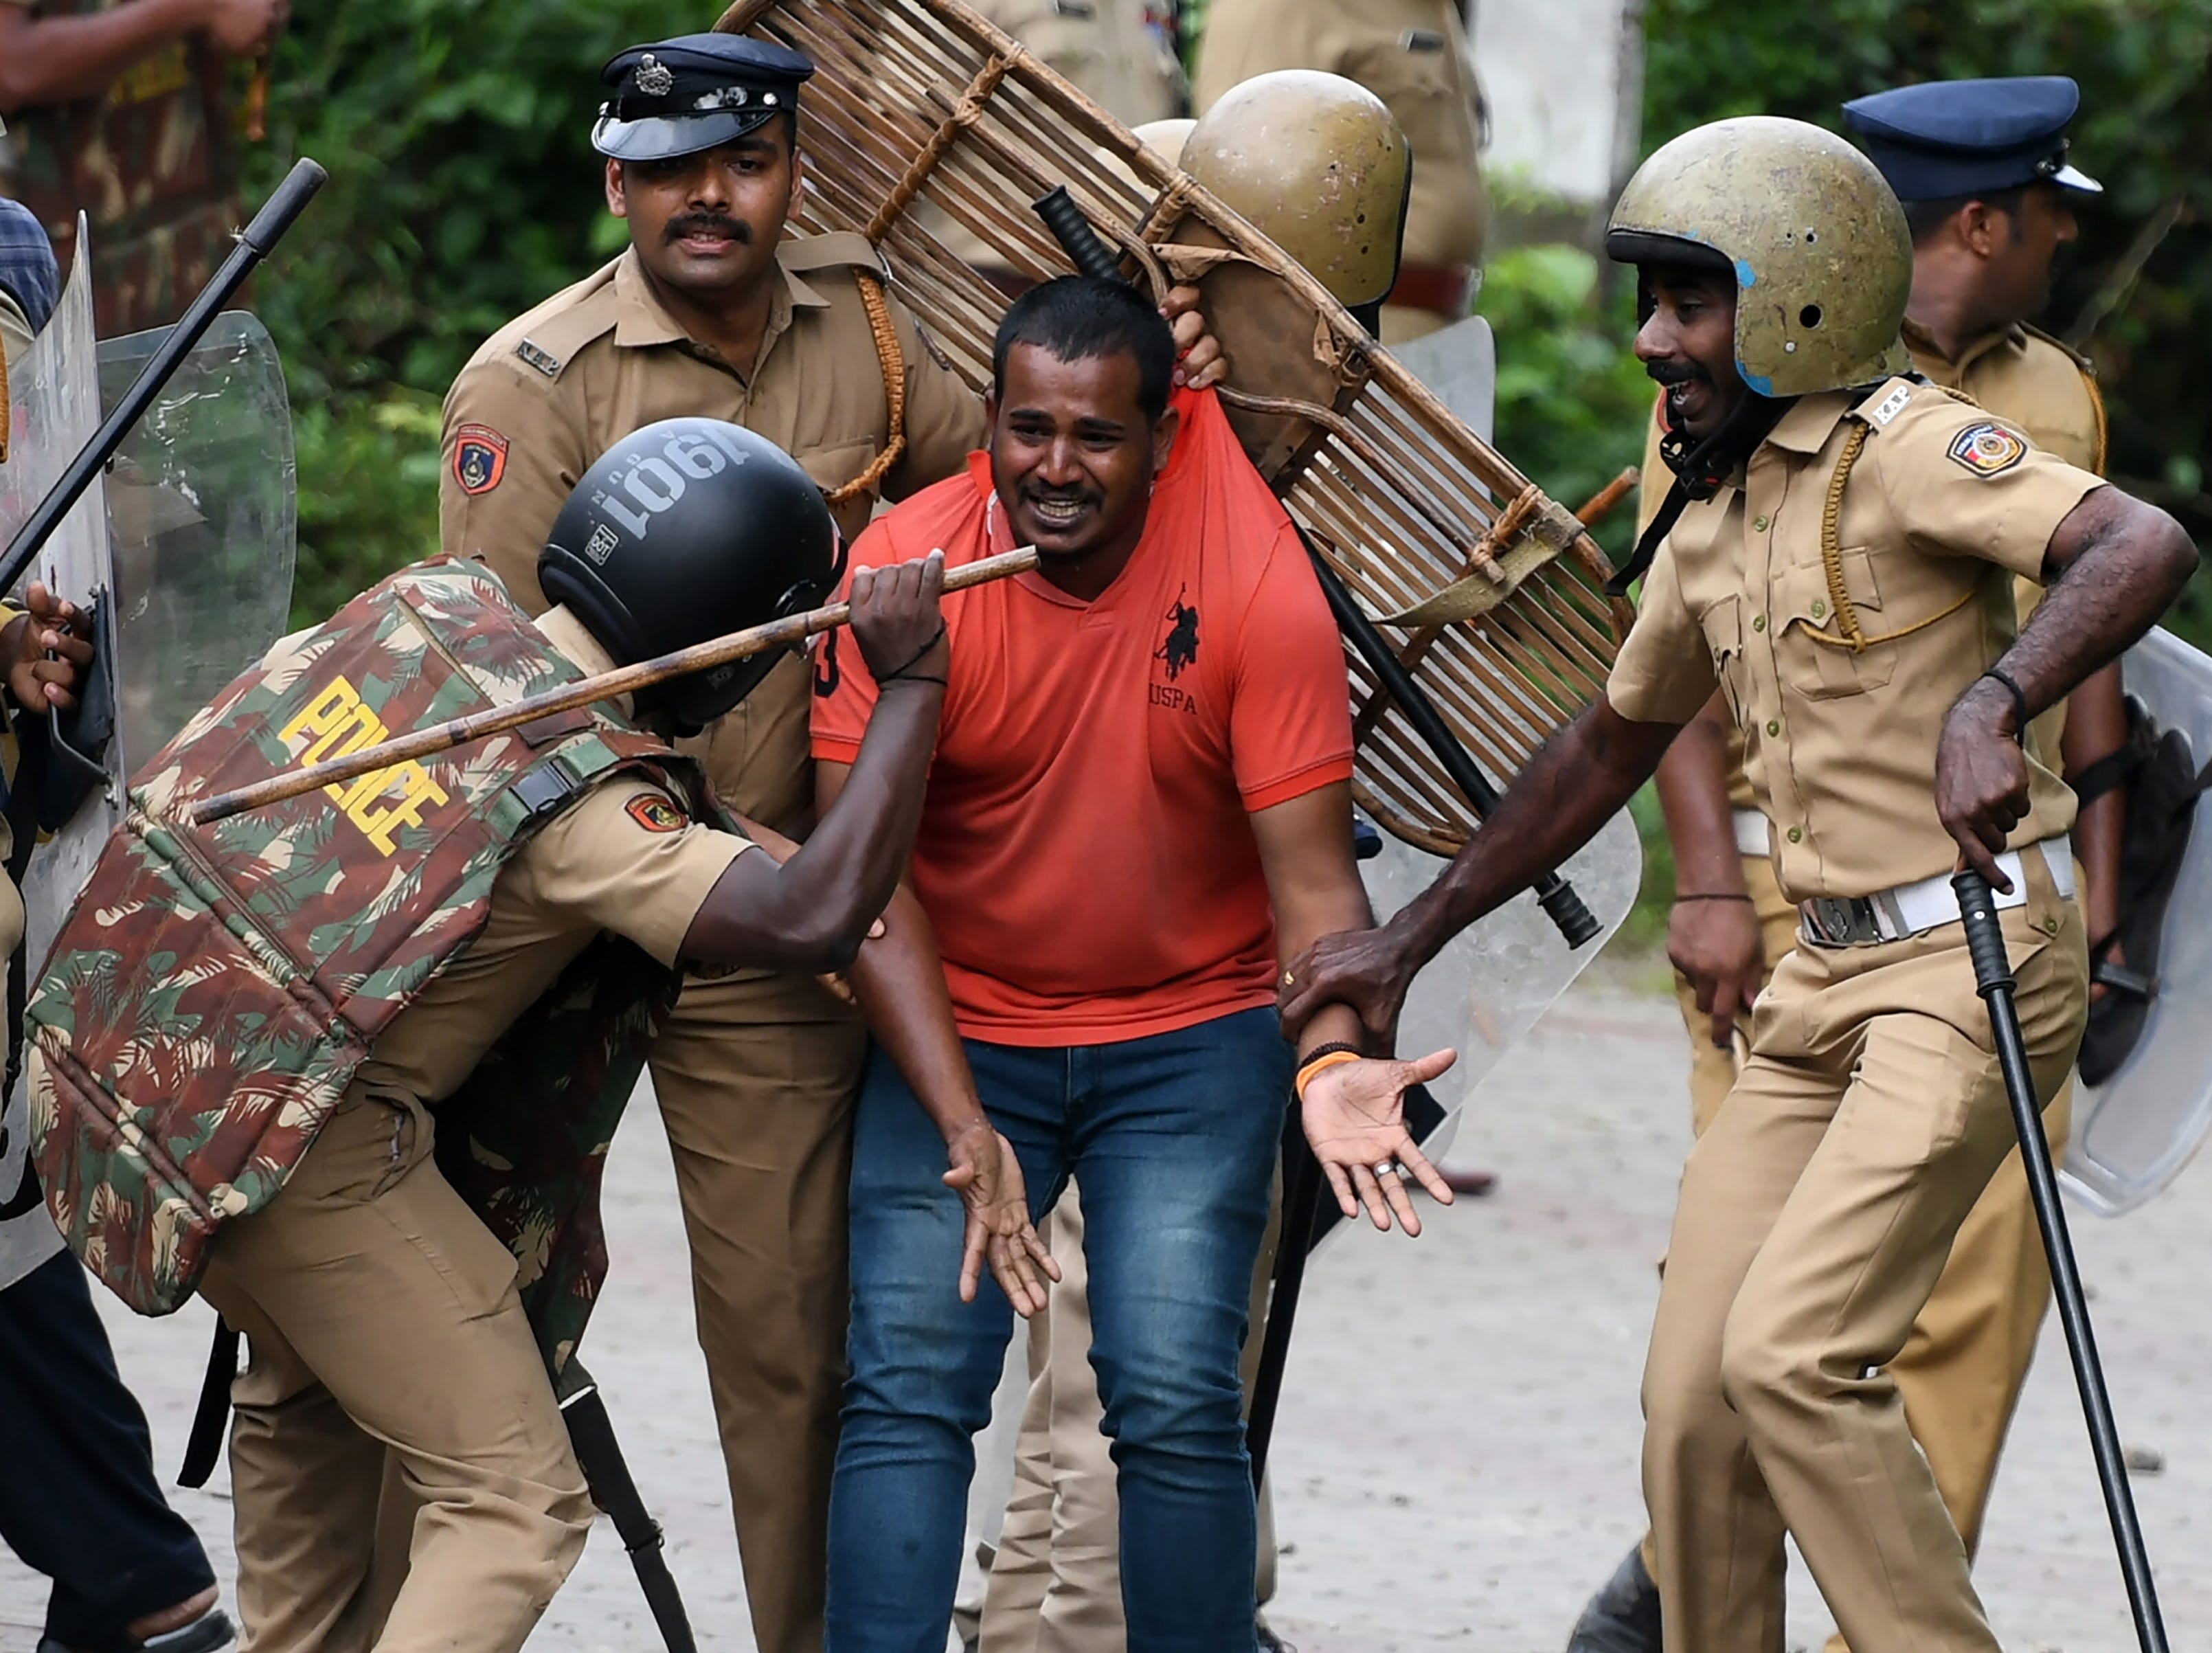 Indian police beat a Hindu activist as he pleads for his safety amid protests against a Supreme Court verdict revoking a ban on women's entry to a Hindu temple, in Nilackal in southern Kerala state on Oct. 17, 2018. Clashes erupted in India as traditionalists tried to stop women from visiting one of Hinduism's most sacred temples, with police waving batons charging stone-throwing protesters.